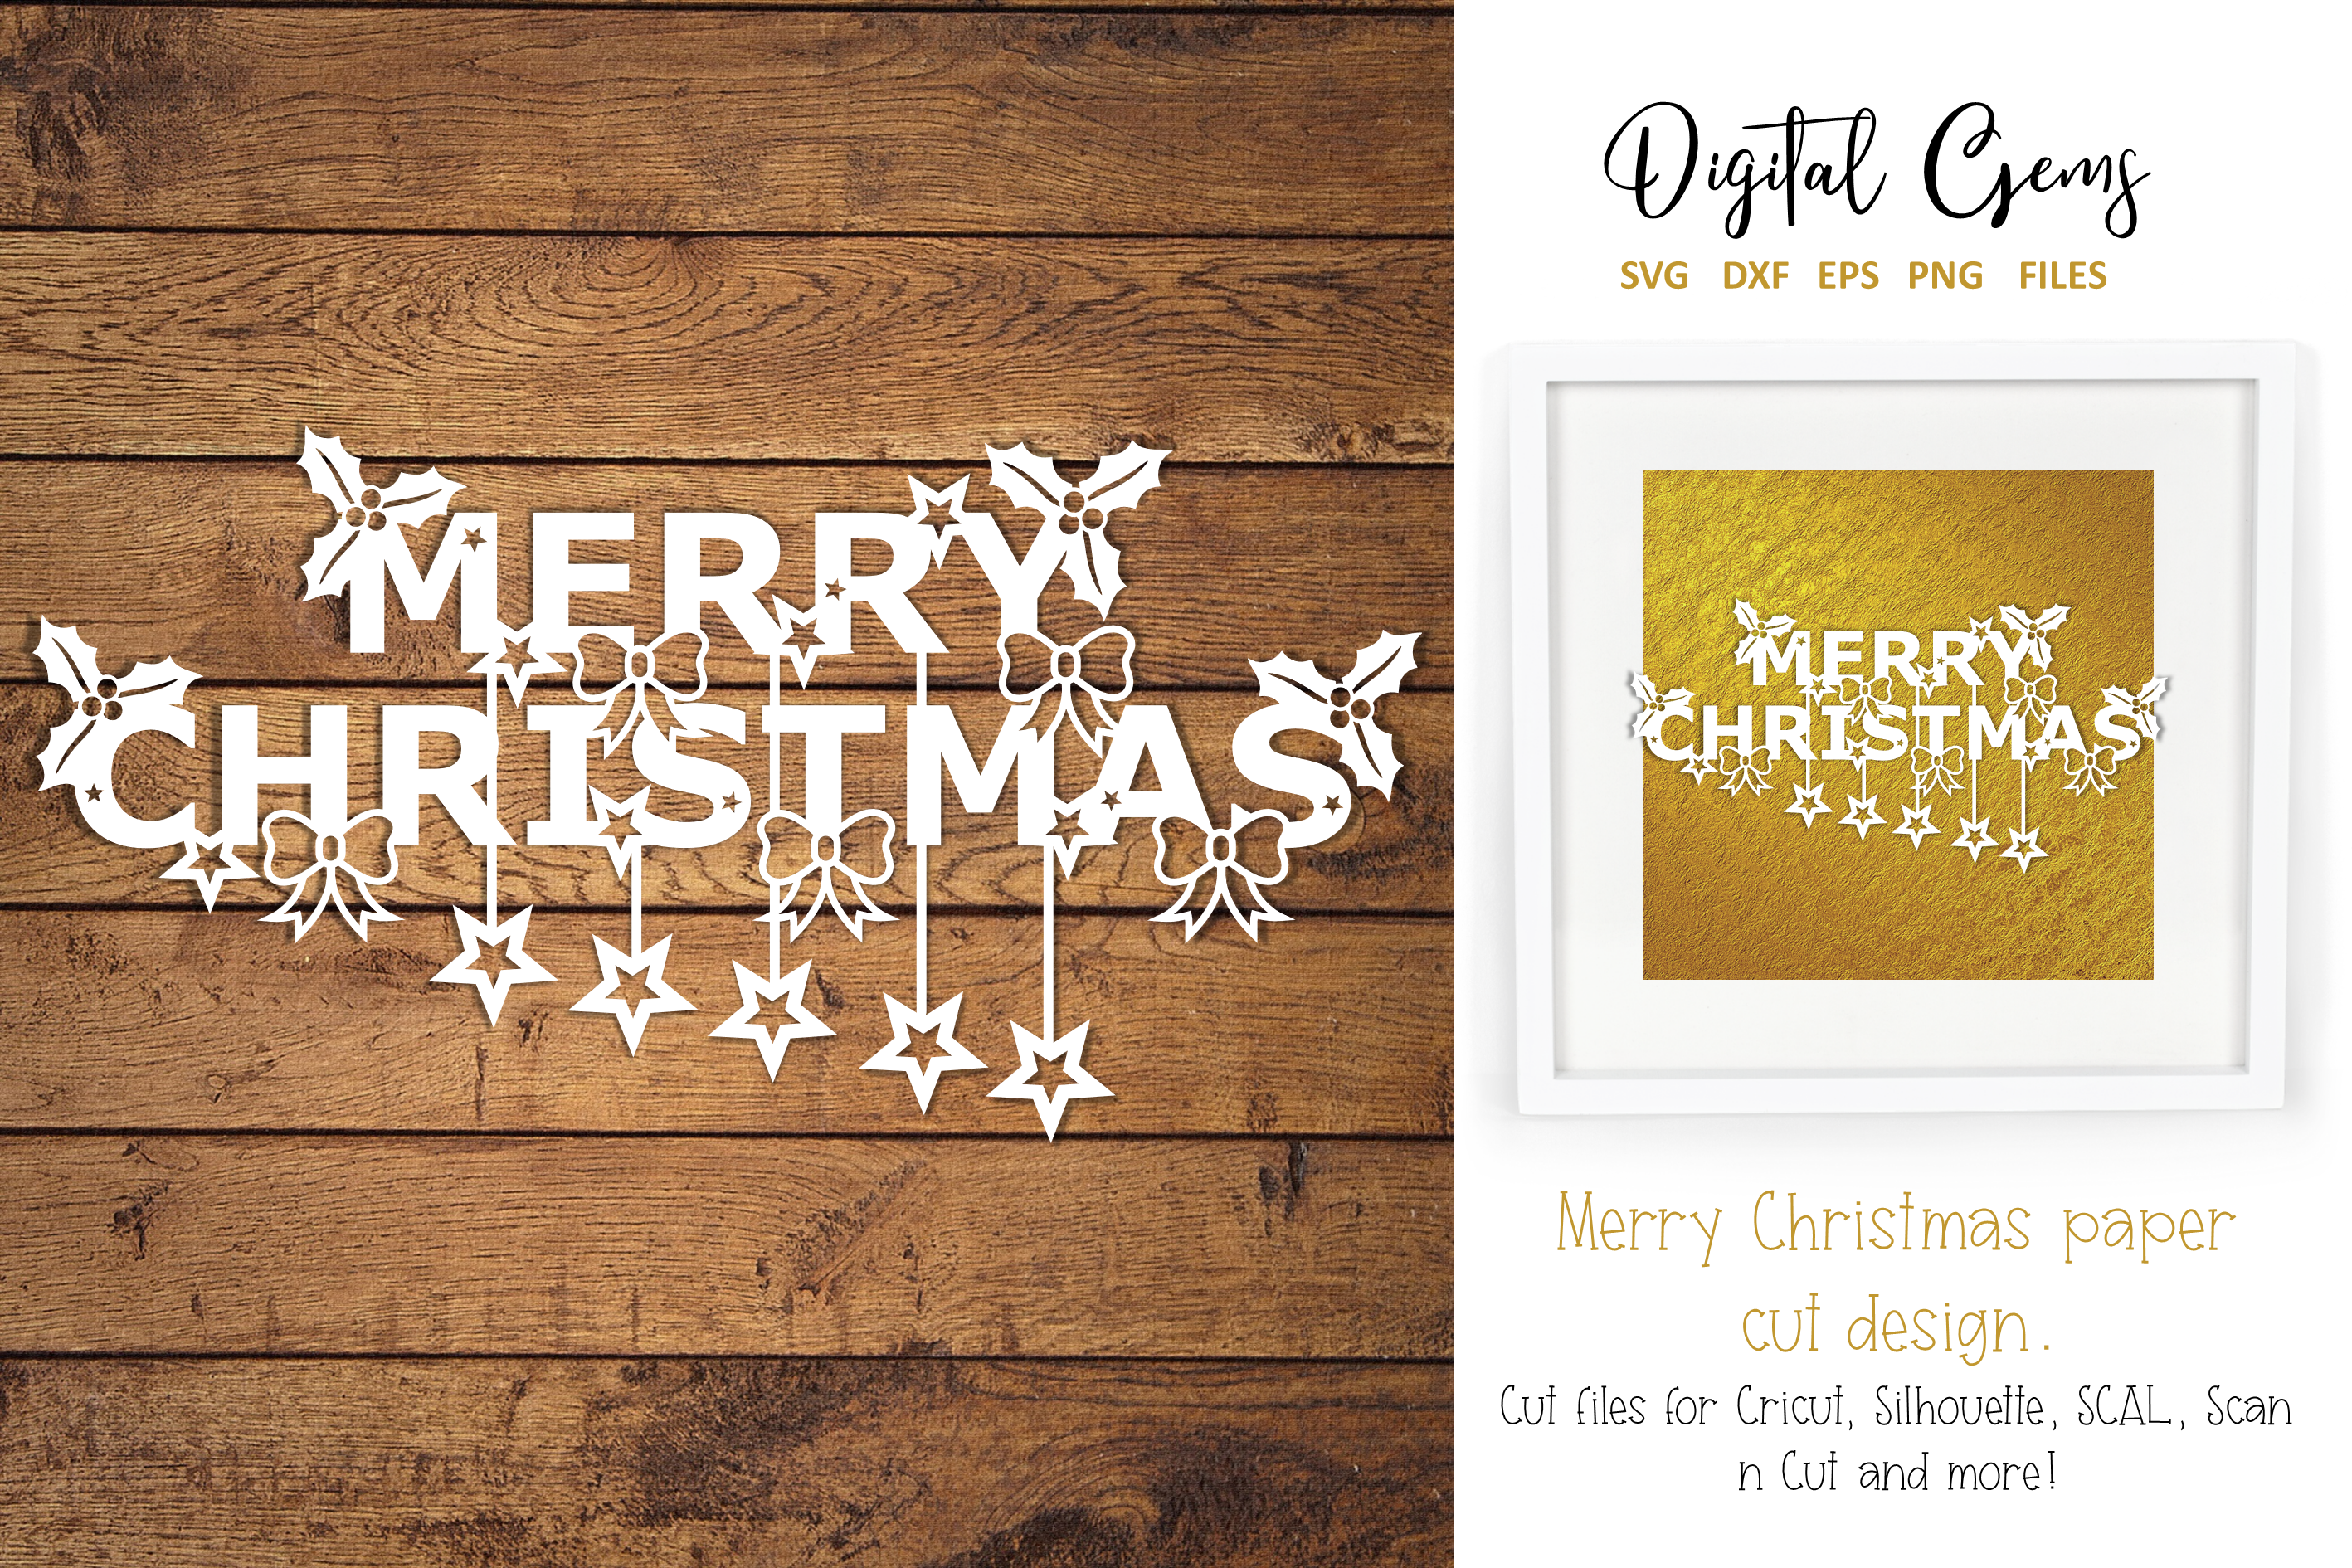 Merry Christmas paper cut SVG / DXF / EPS files example image 2